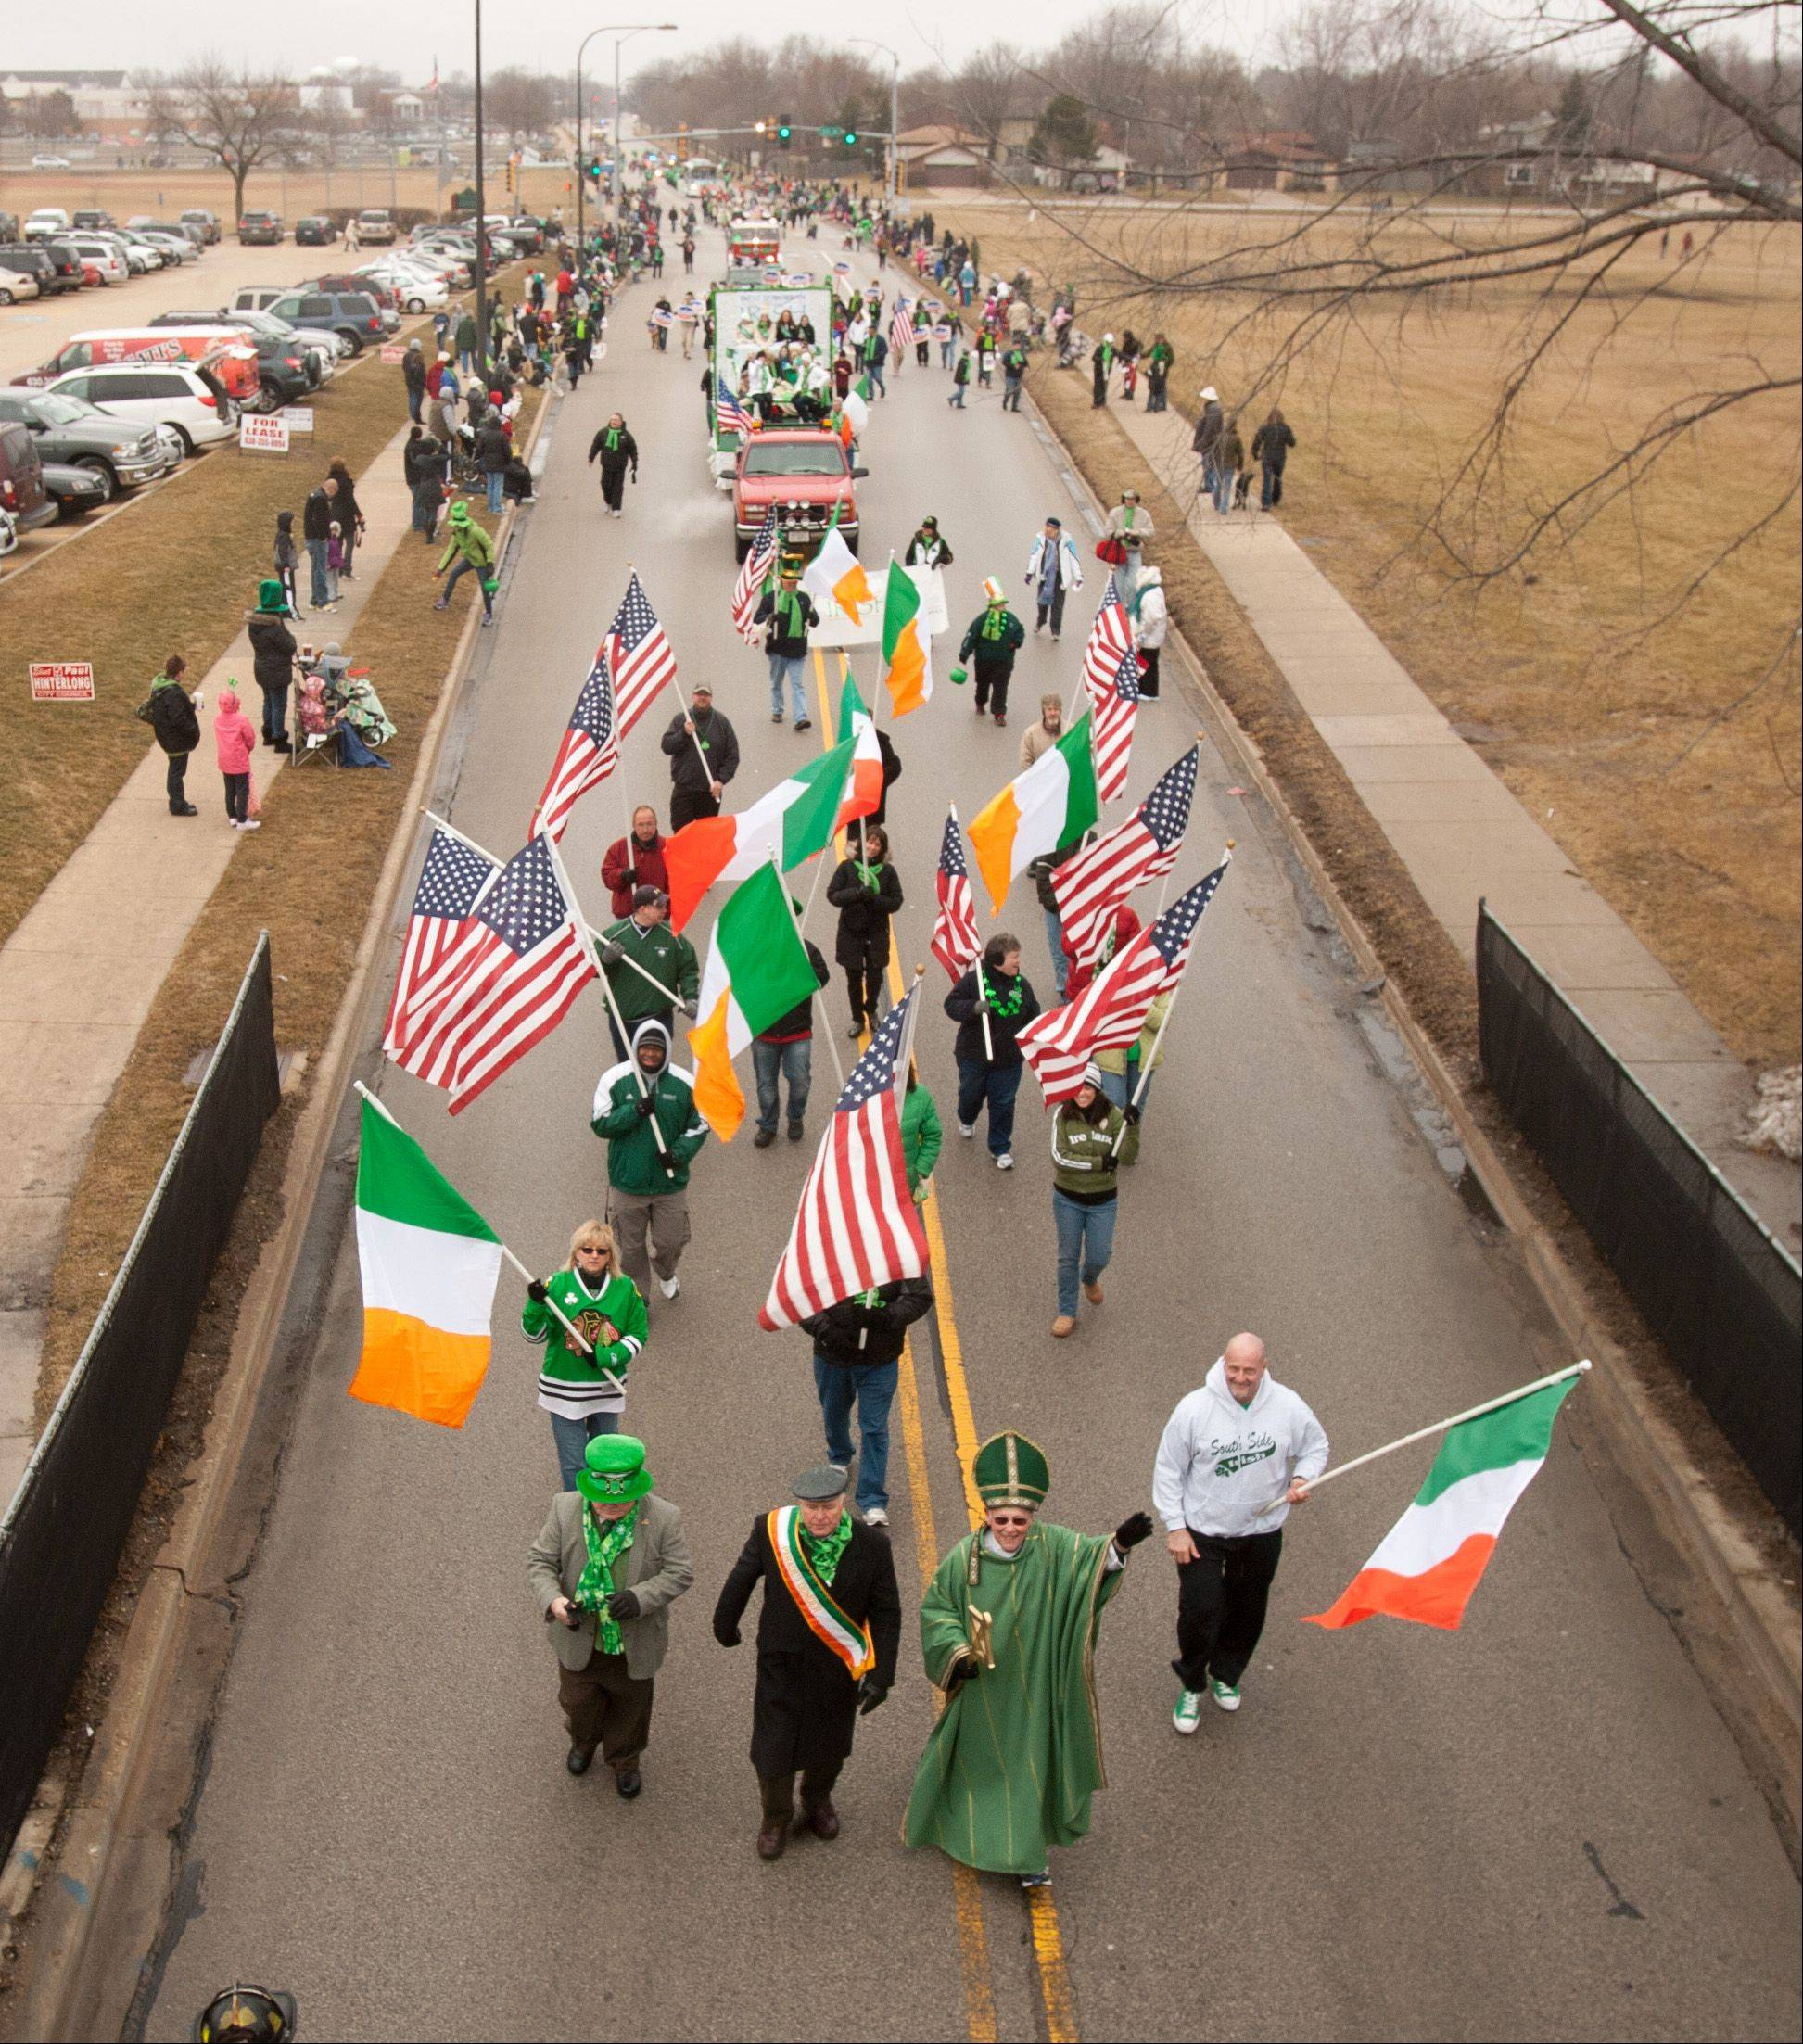 Bob Welsh of Crest Hill, dressed as St. Patrick, marches down Mill Street on Saturday near the beginning of the annual St. Patrick's Day Parade in Naperville.